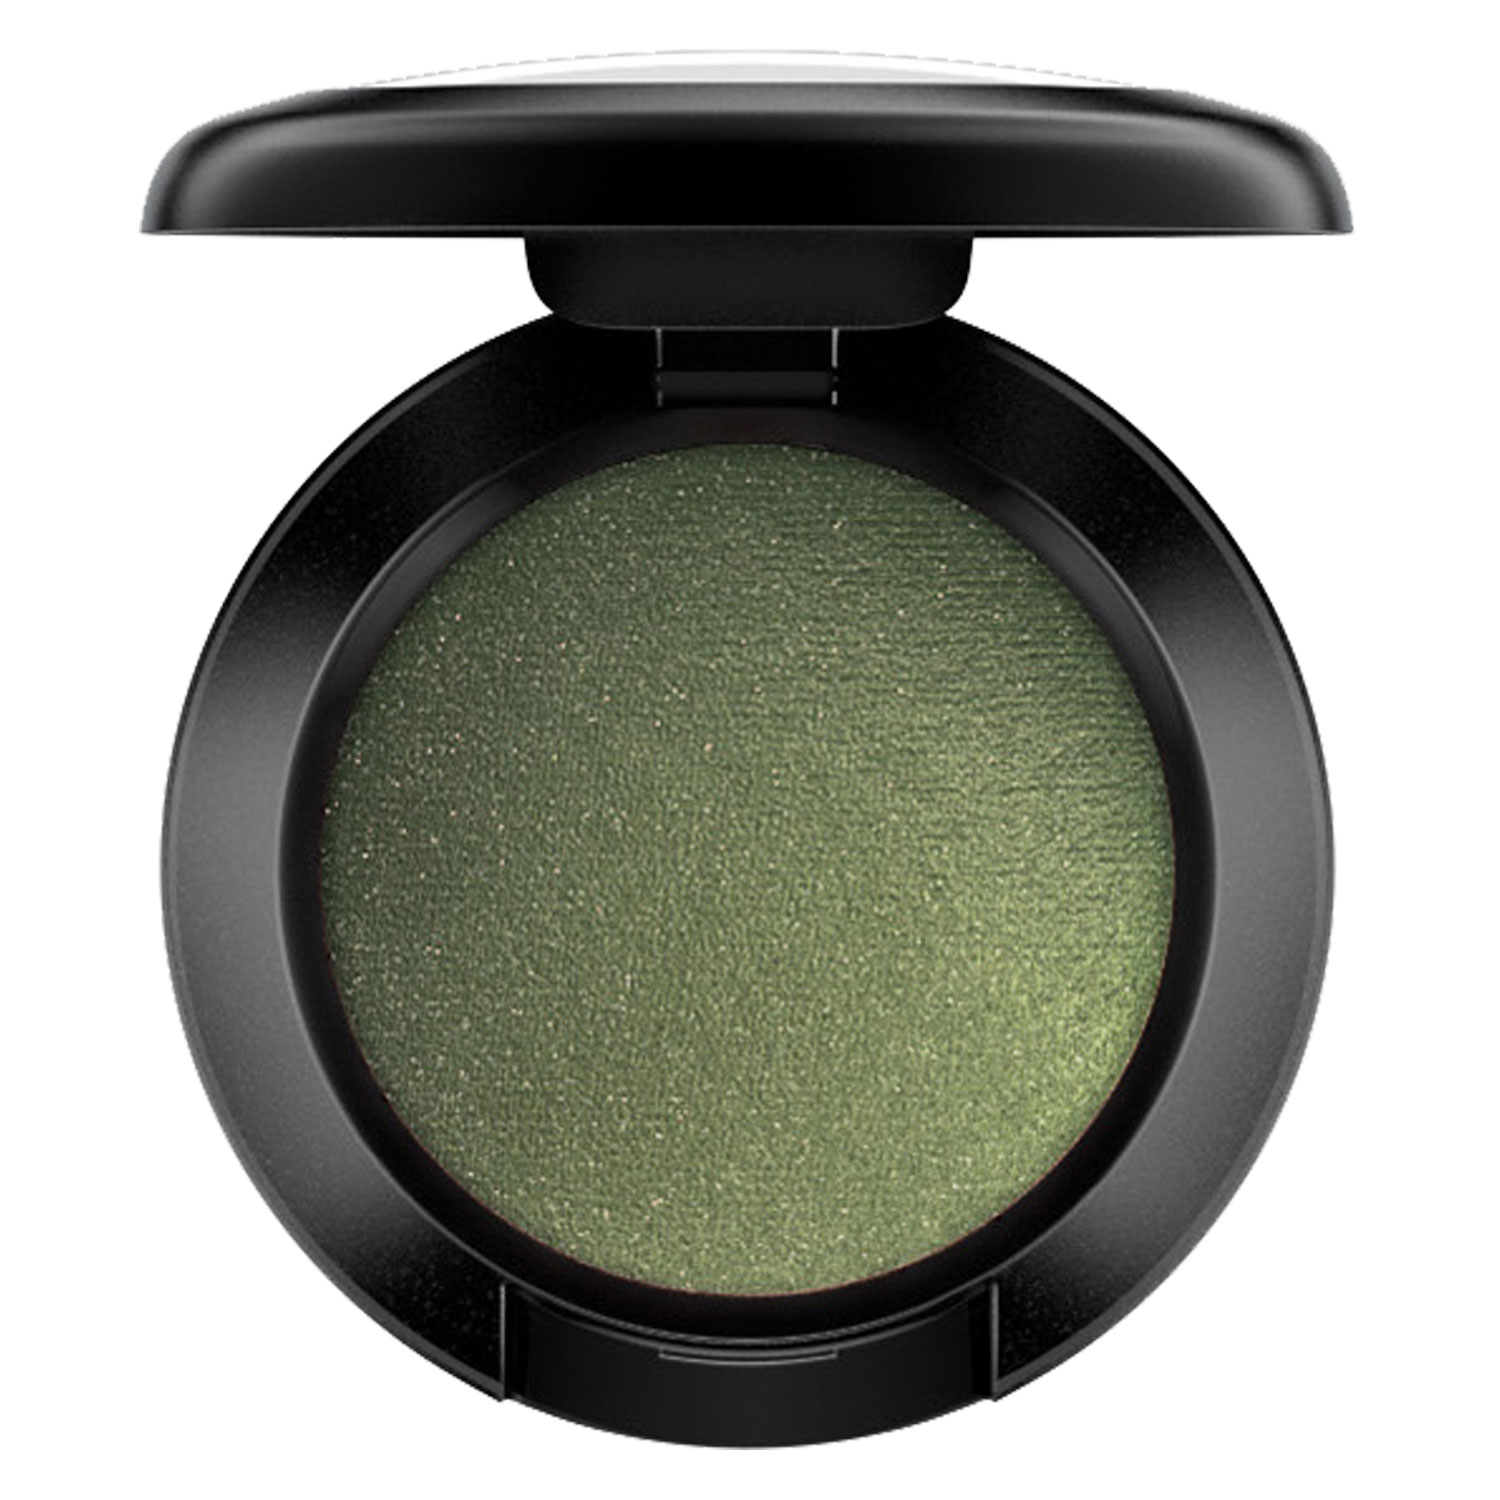 Small Eye Shadow - Frost Humid - 1.5g